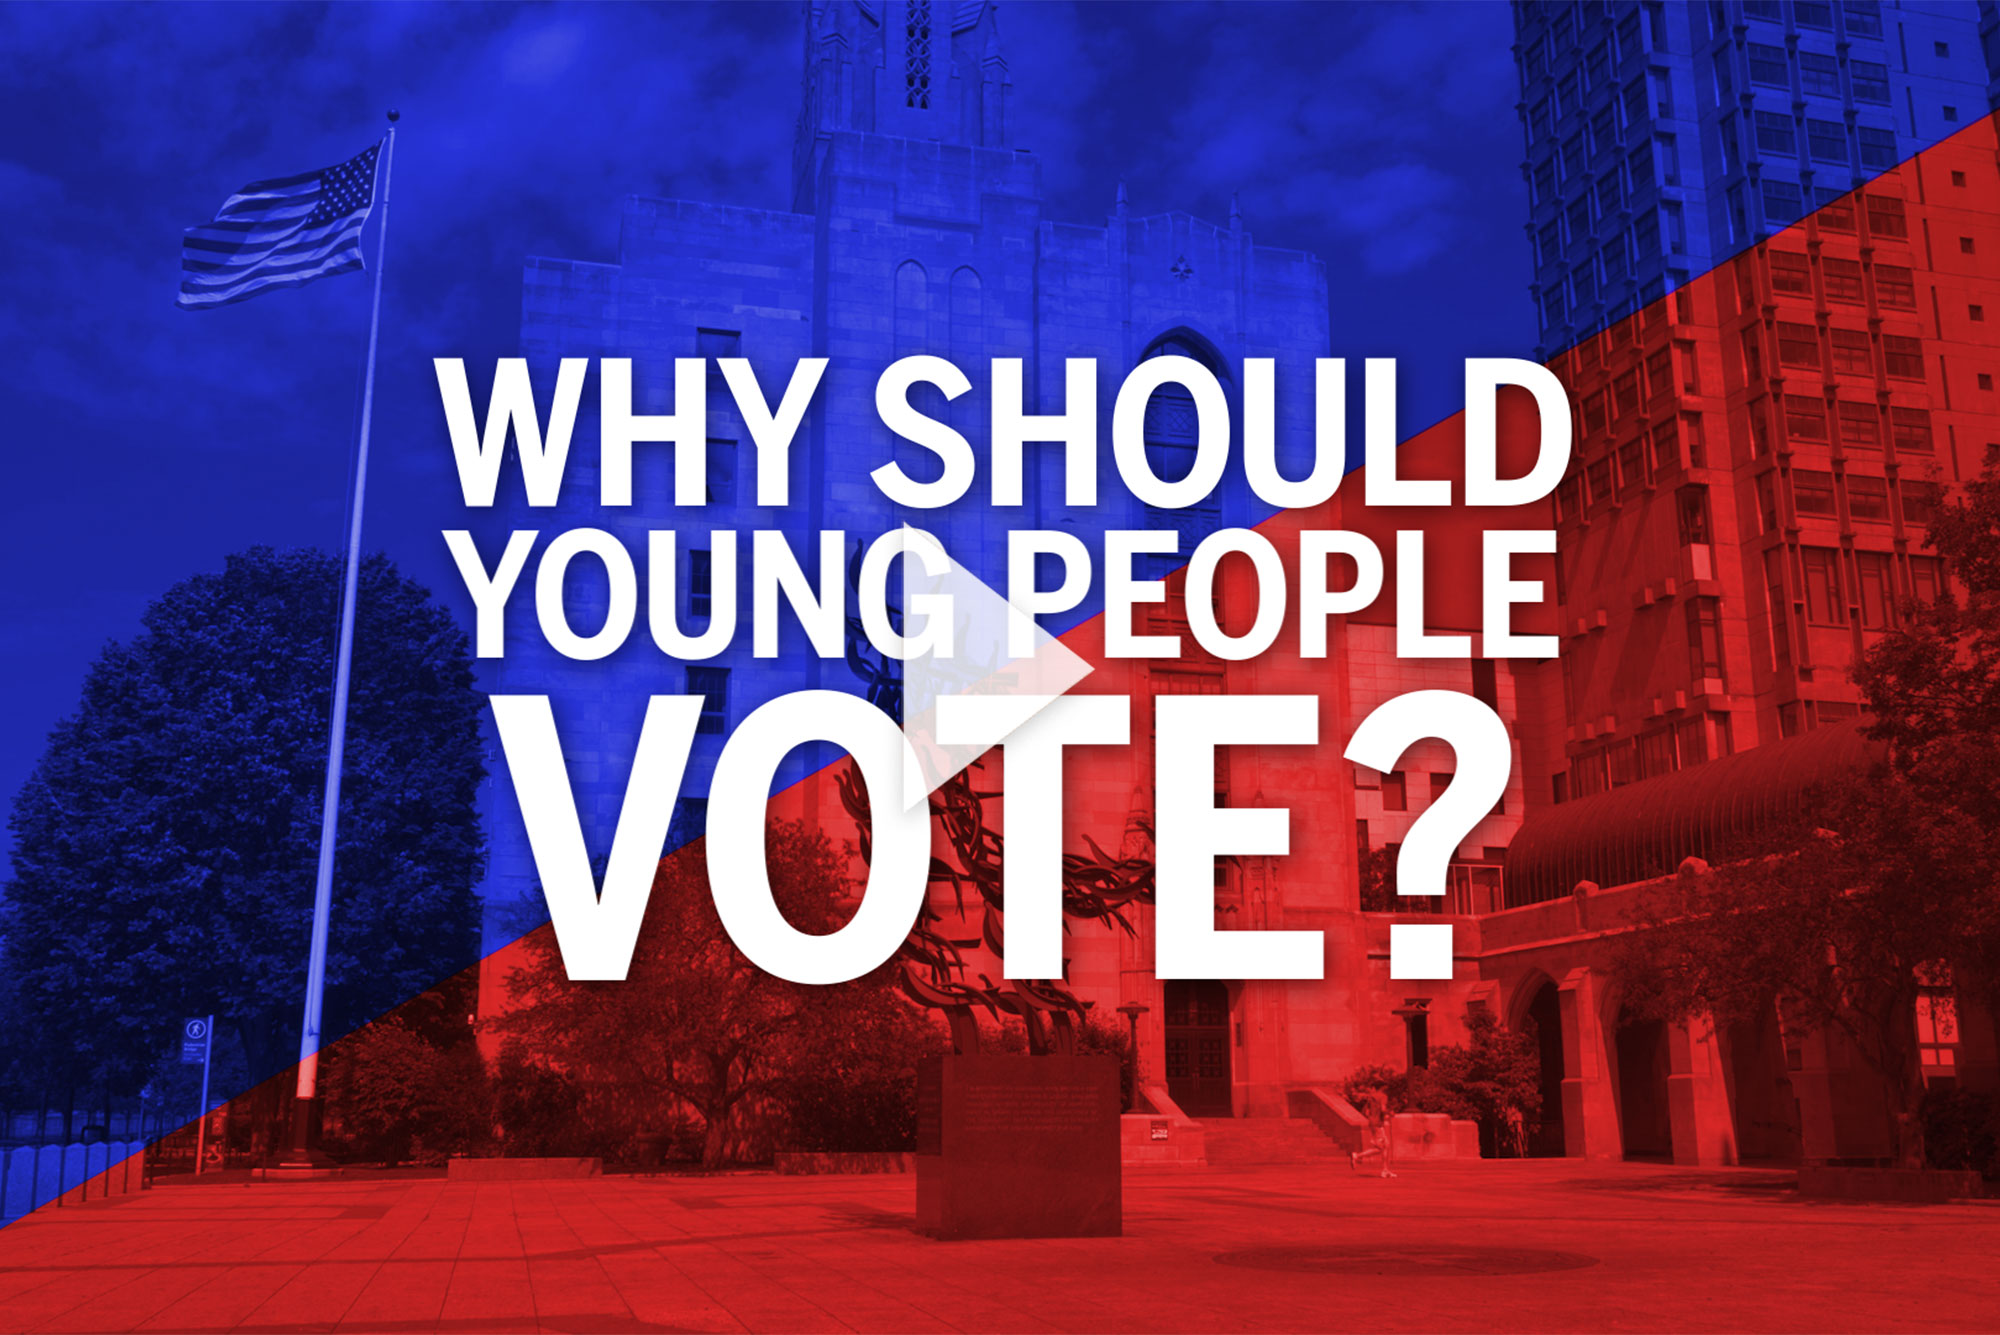 Red and blue image with embedded text that reads 'Why Should Young People Vote?'